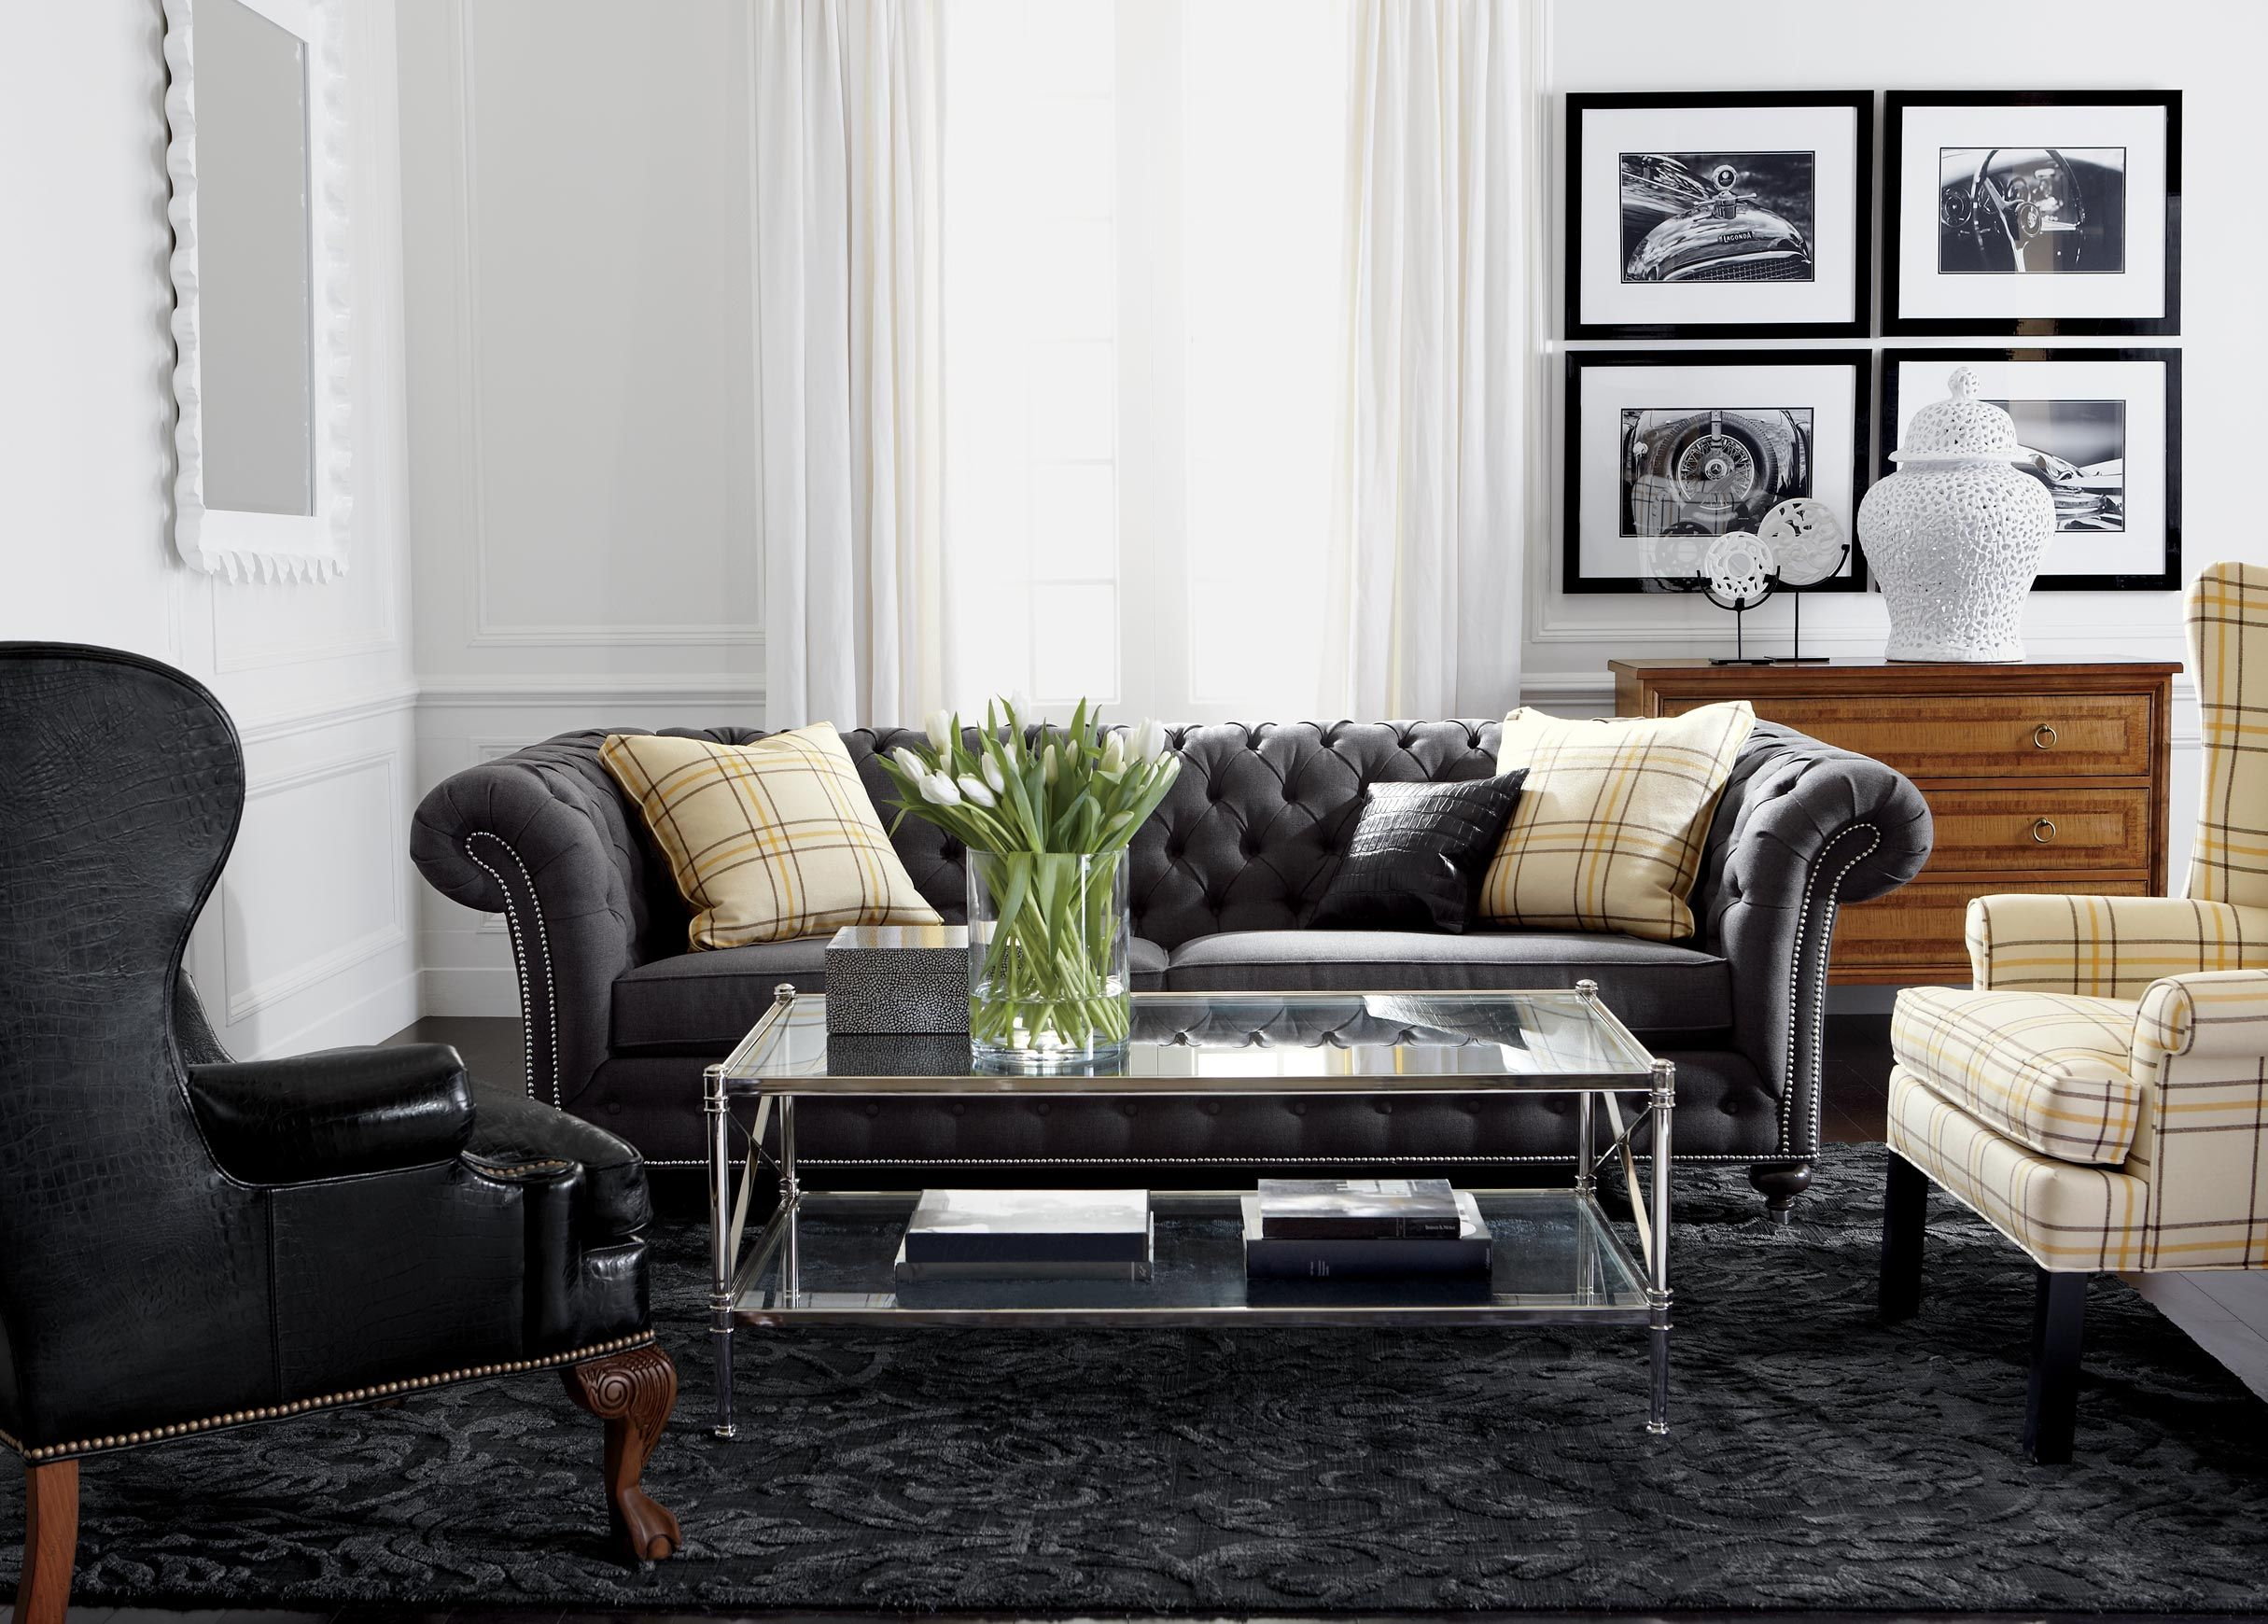 Cool Like The Plaid Wingback And Overall Feel, Masculine But Comfy, Nice throughout Ethan Allen Living Room